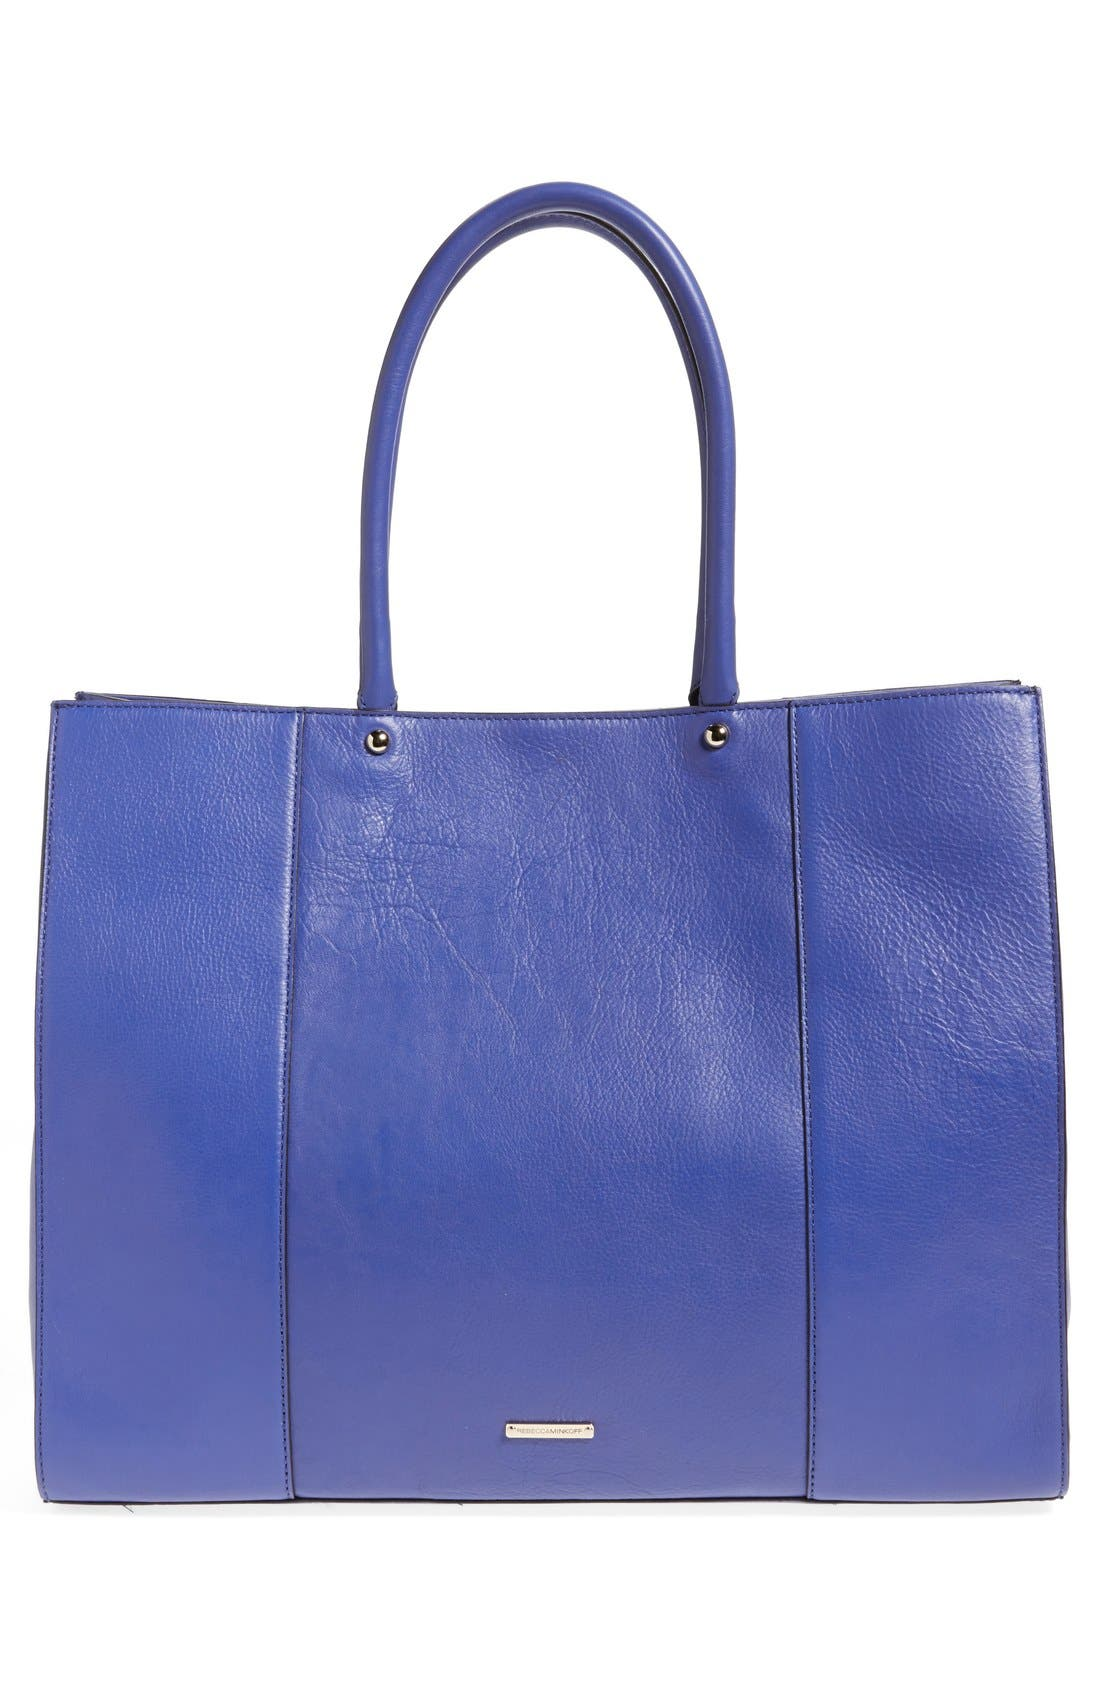 'MAB' Tote,                             Alternate thumbnail 4, color,                             401